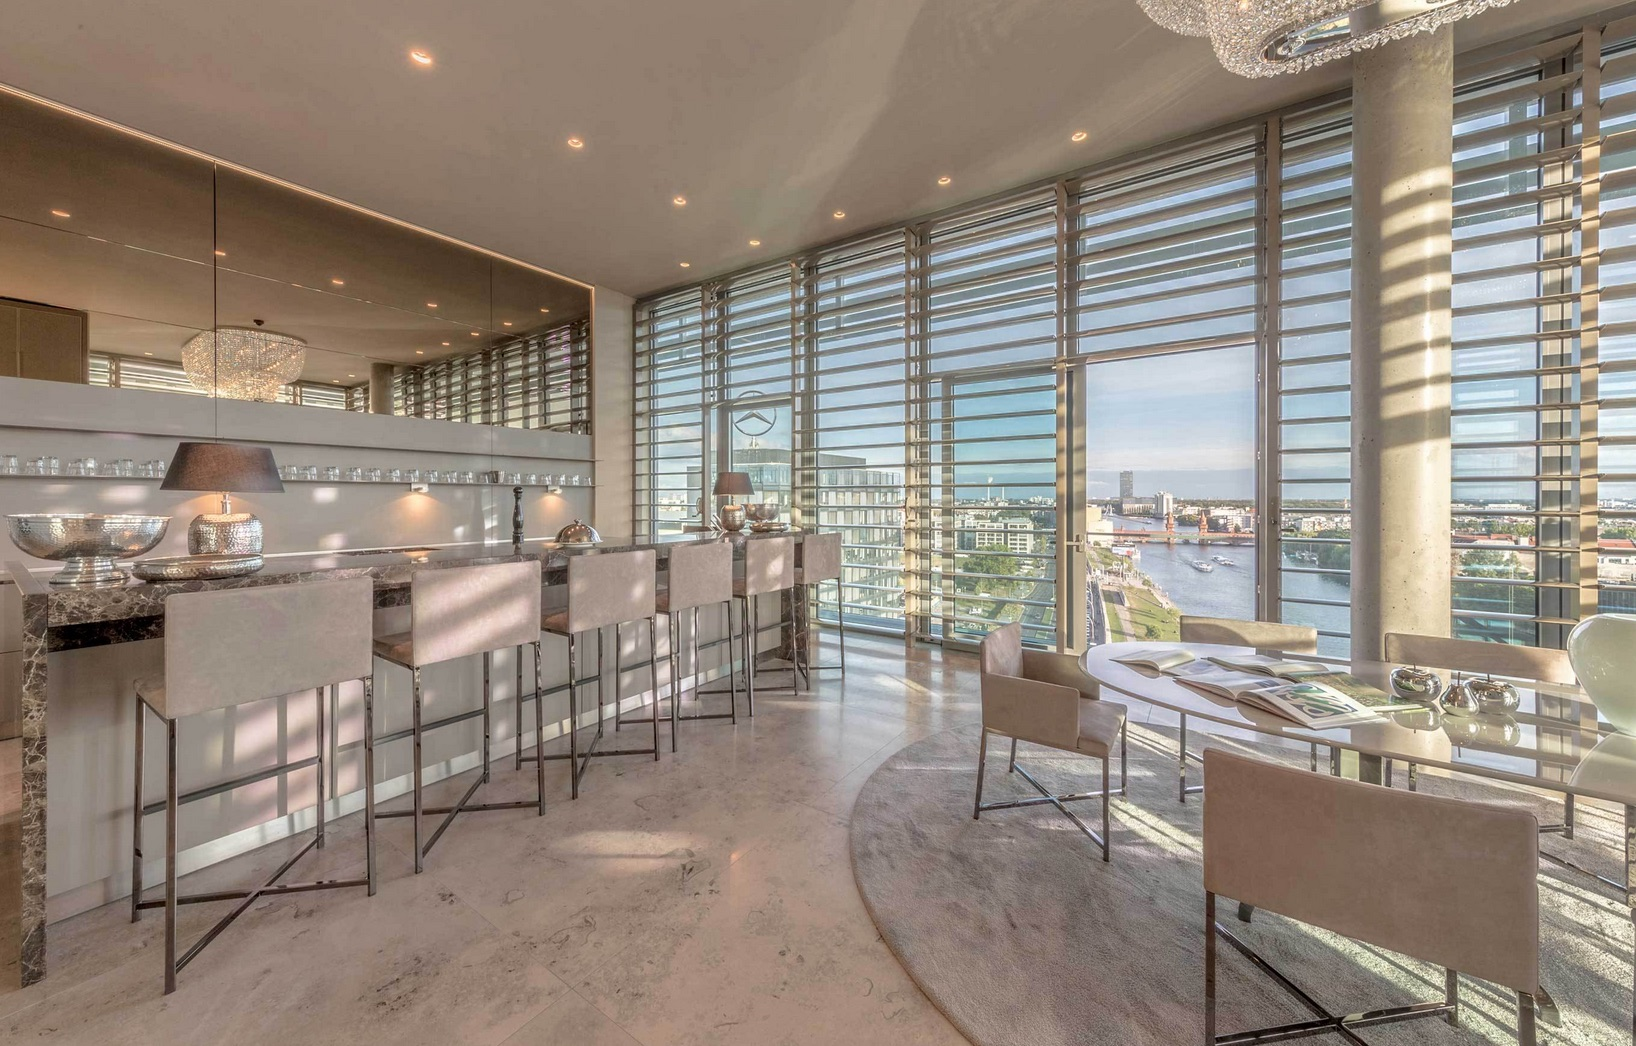 5 Tips For Ing Luxury Apartments And Other High End Real Estate